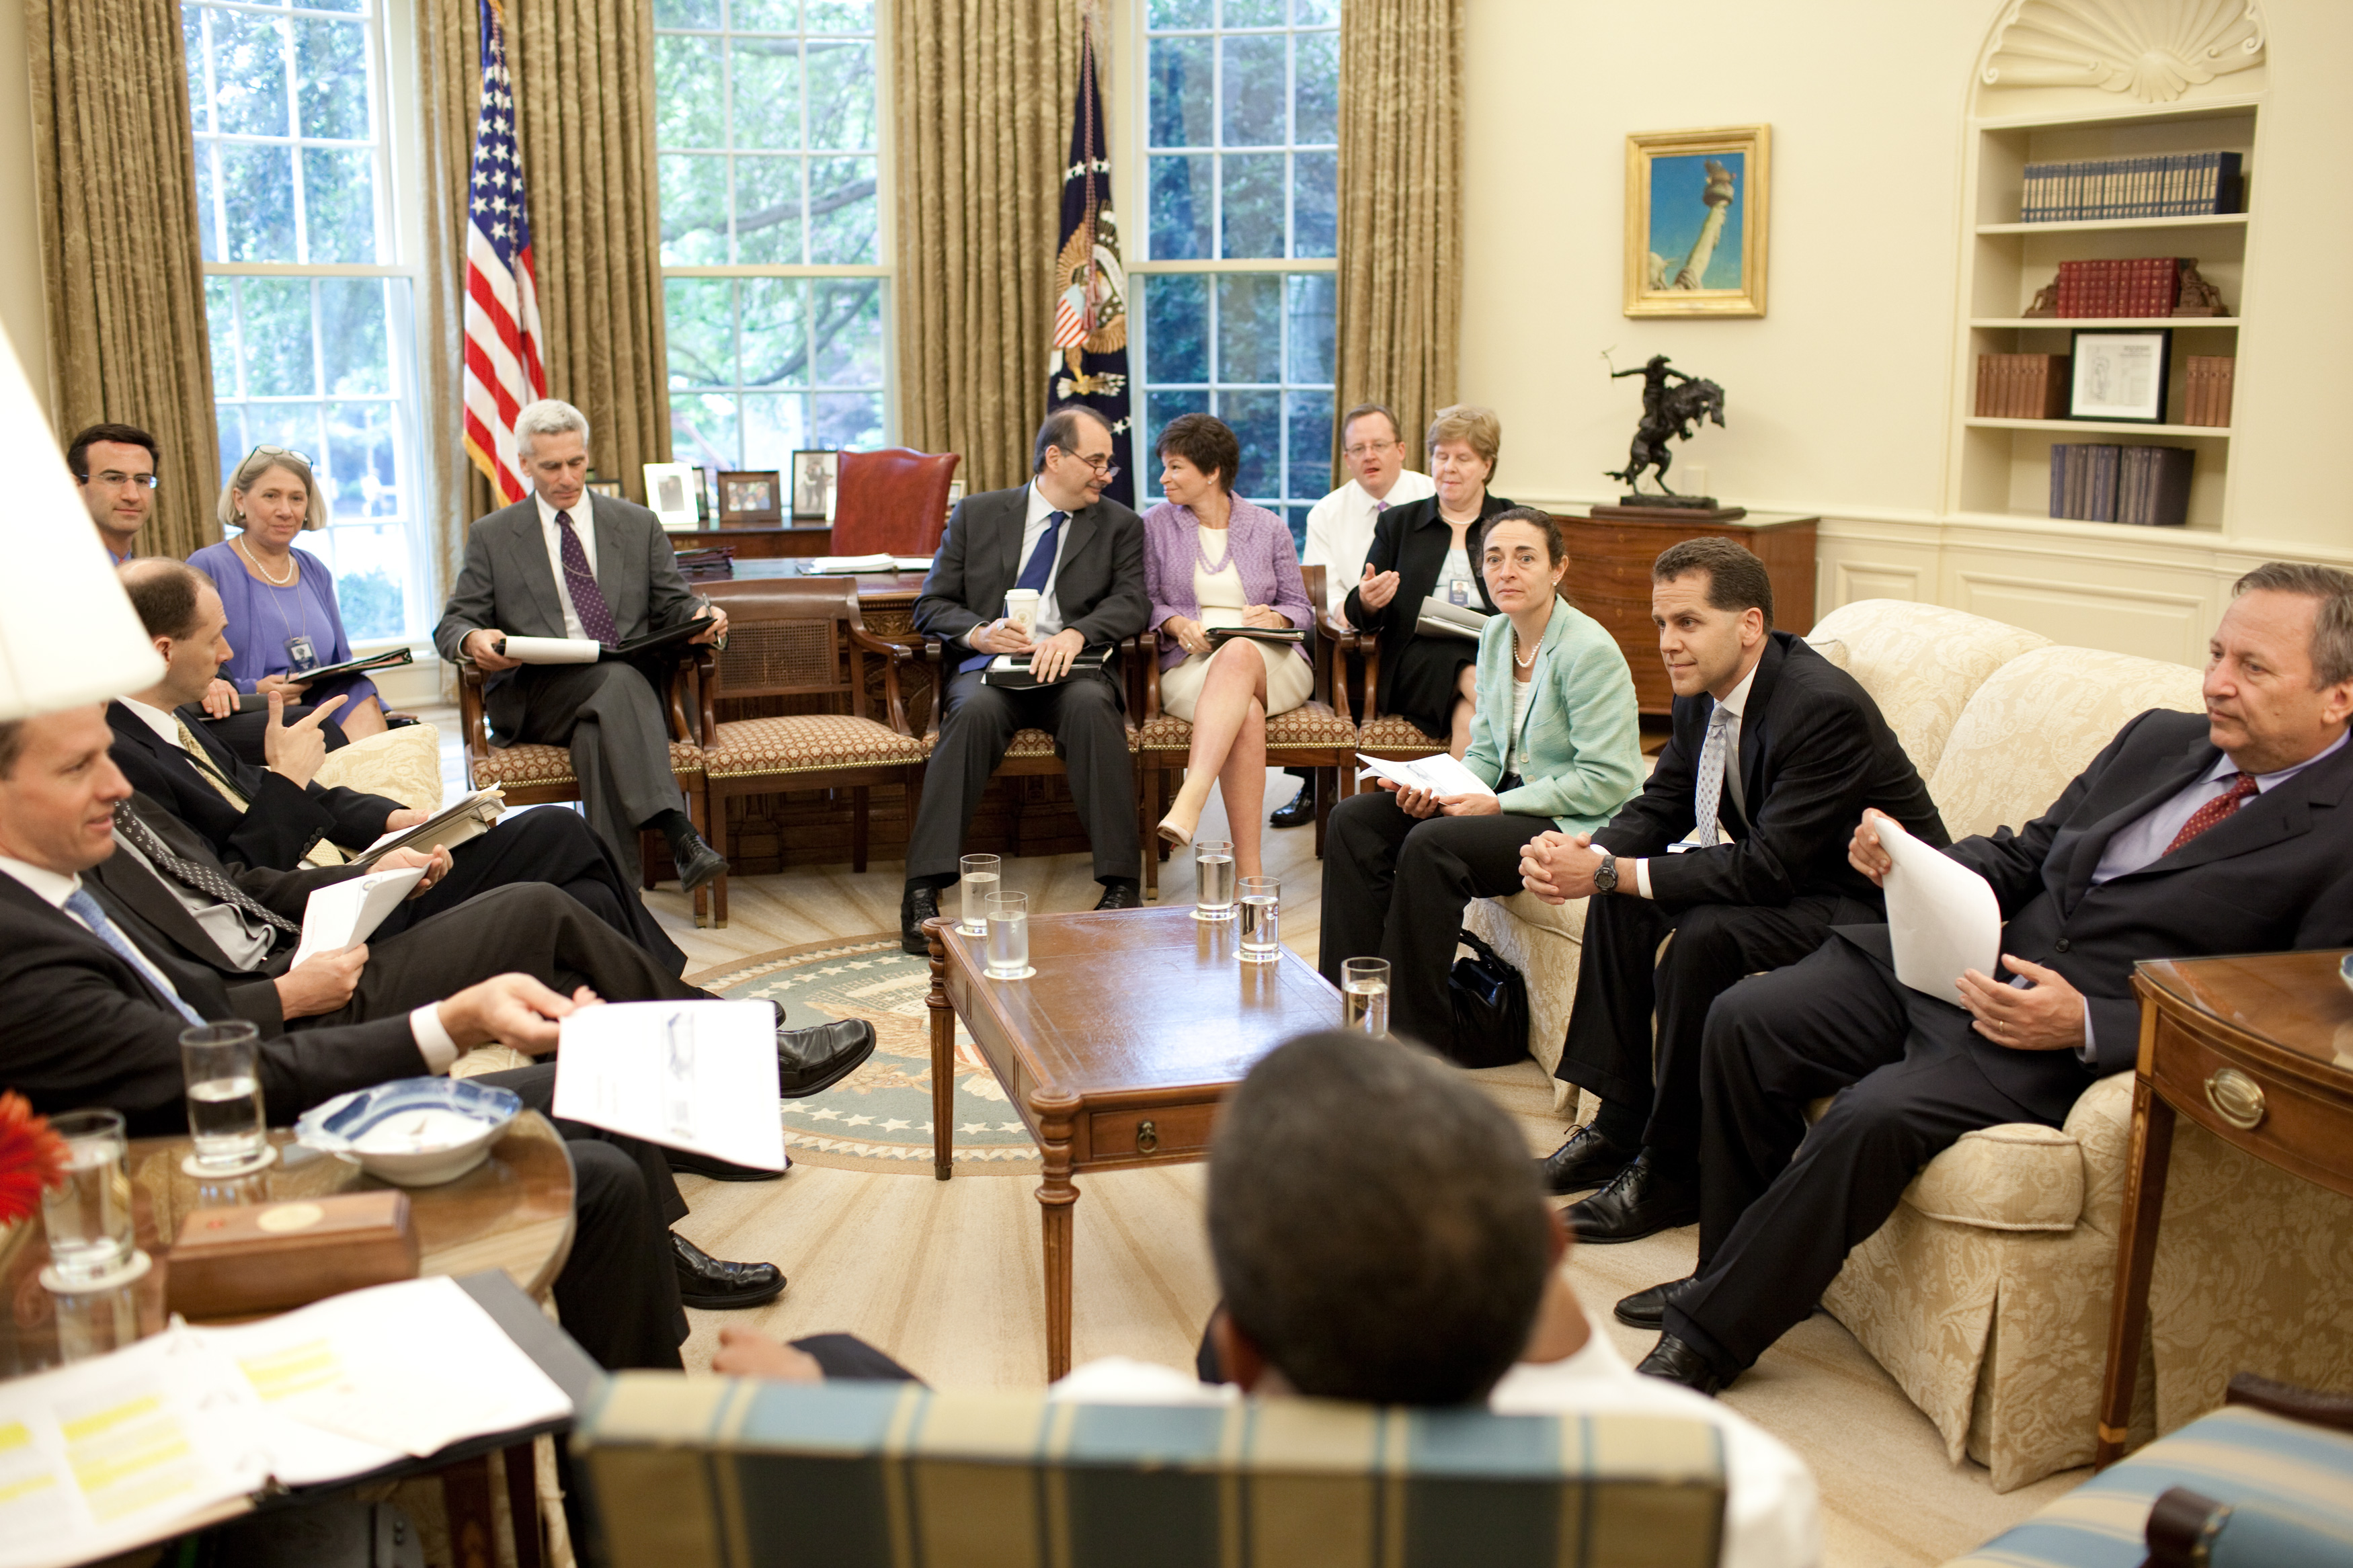 Free Public Domain Image Meeting In The Oval Office Of The White